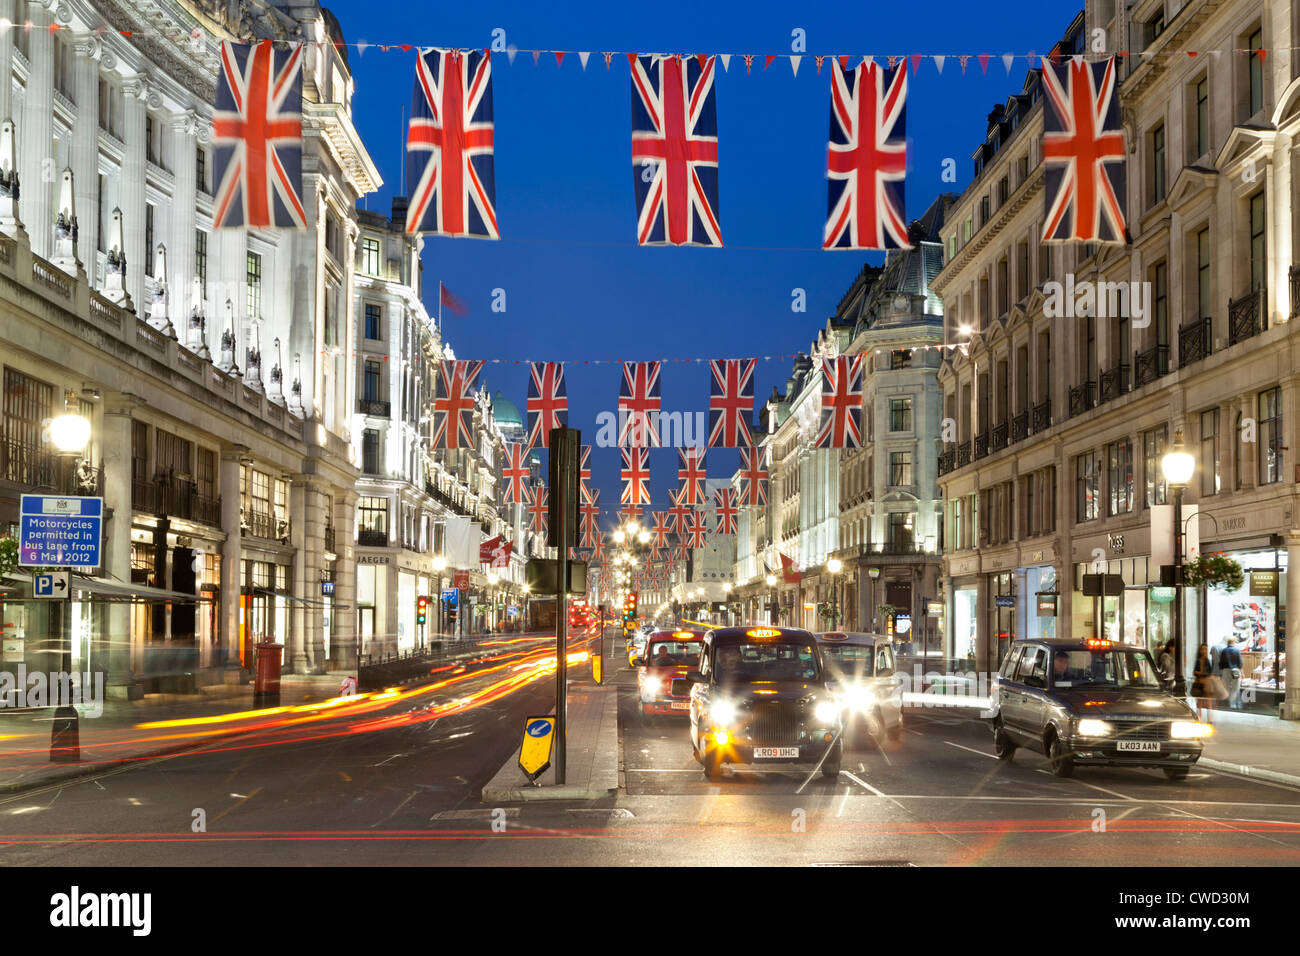 Regent Street with taxis and Union flags - Stock Image